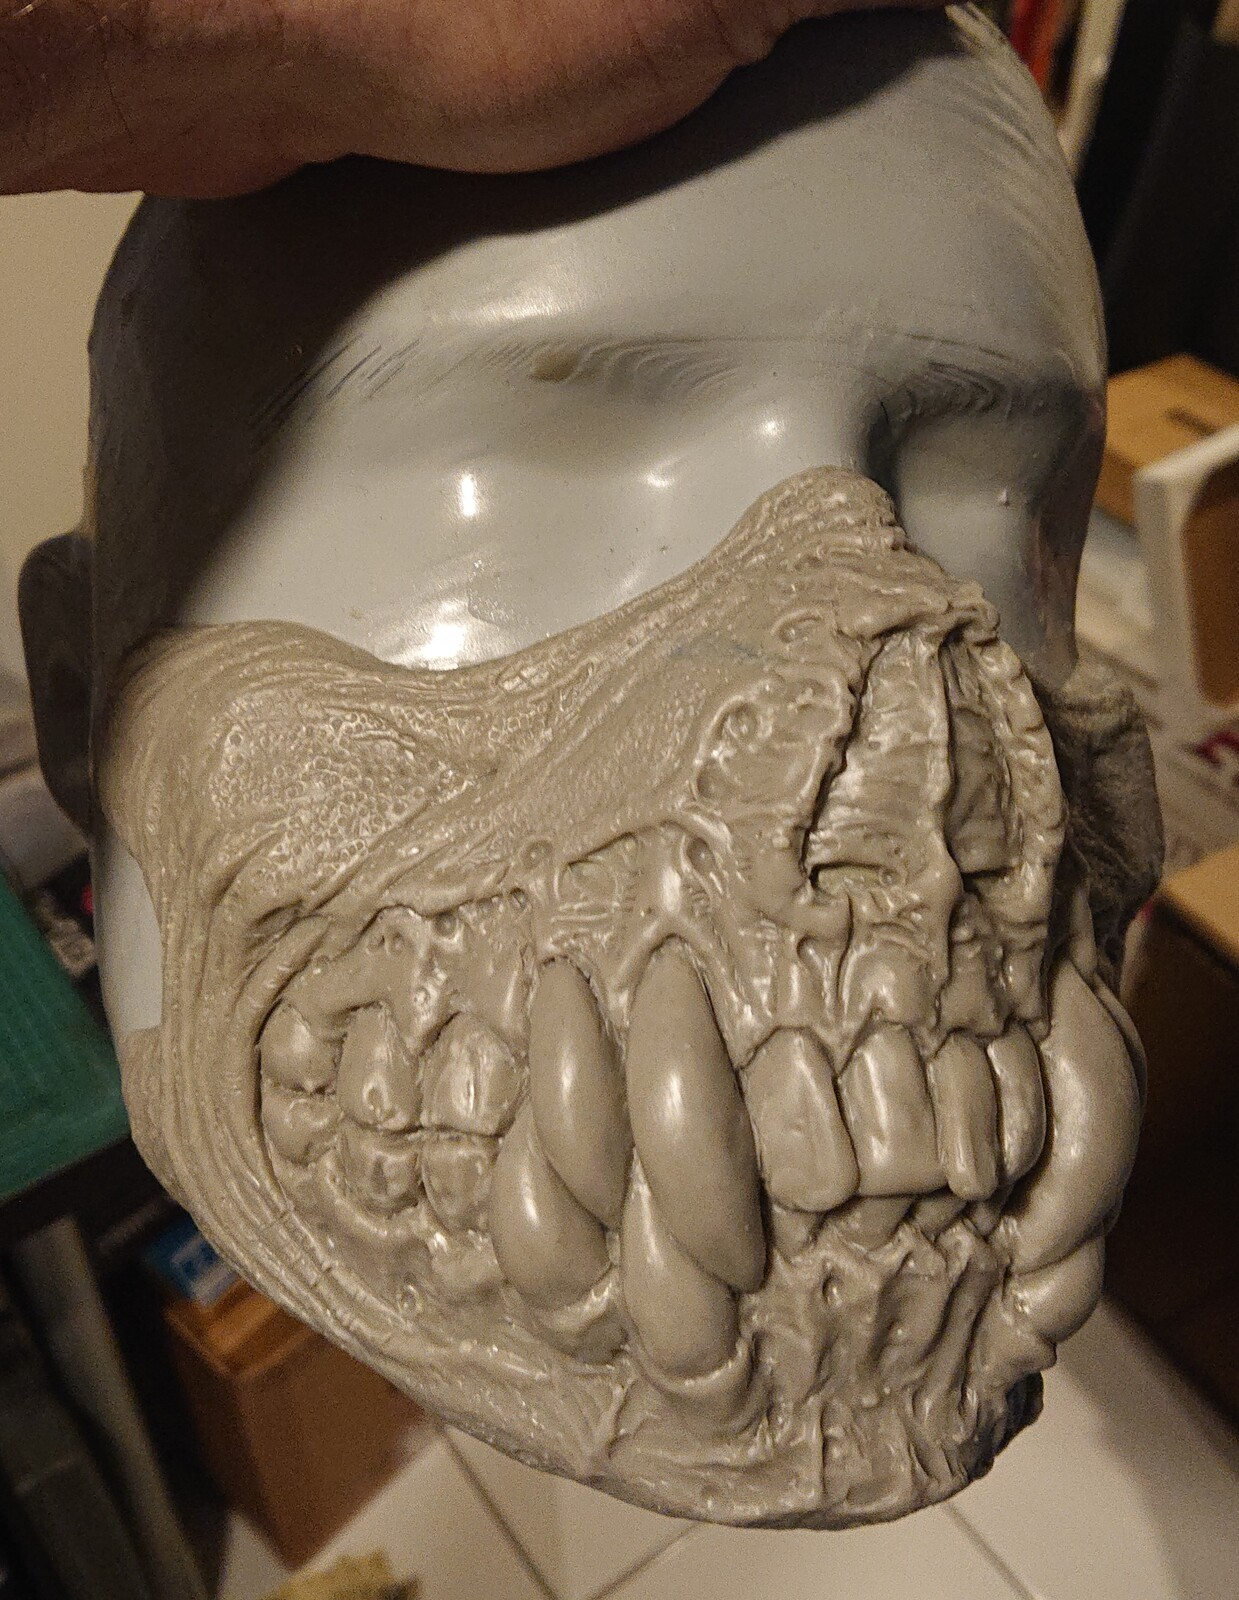 Monster clay mask